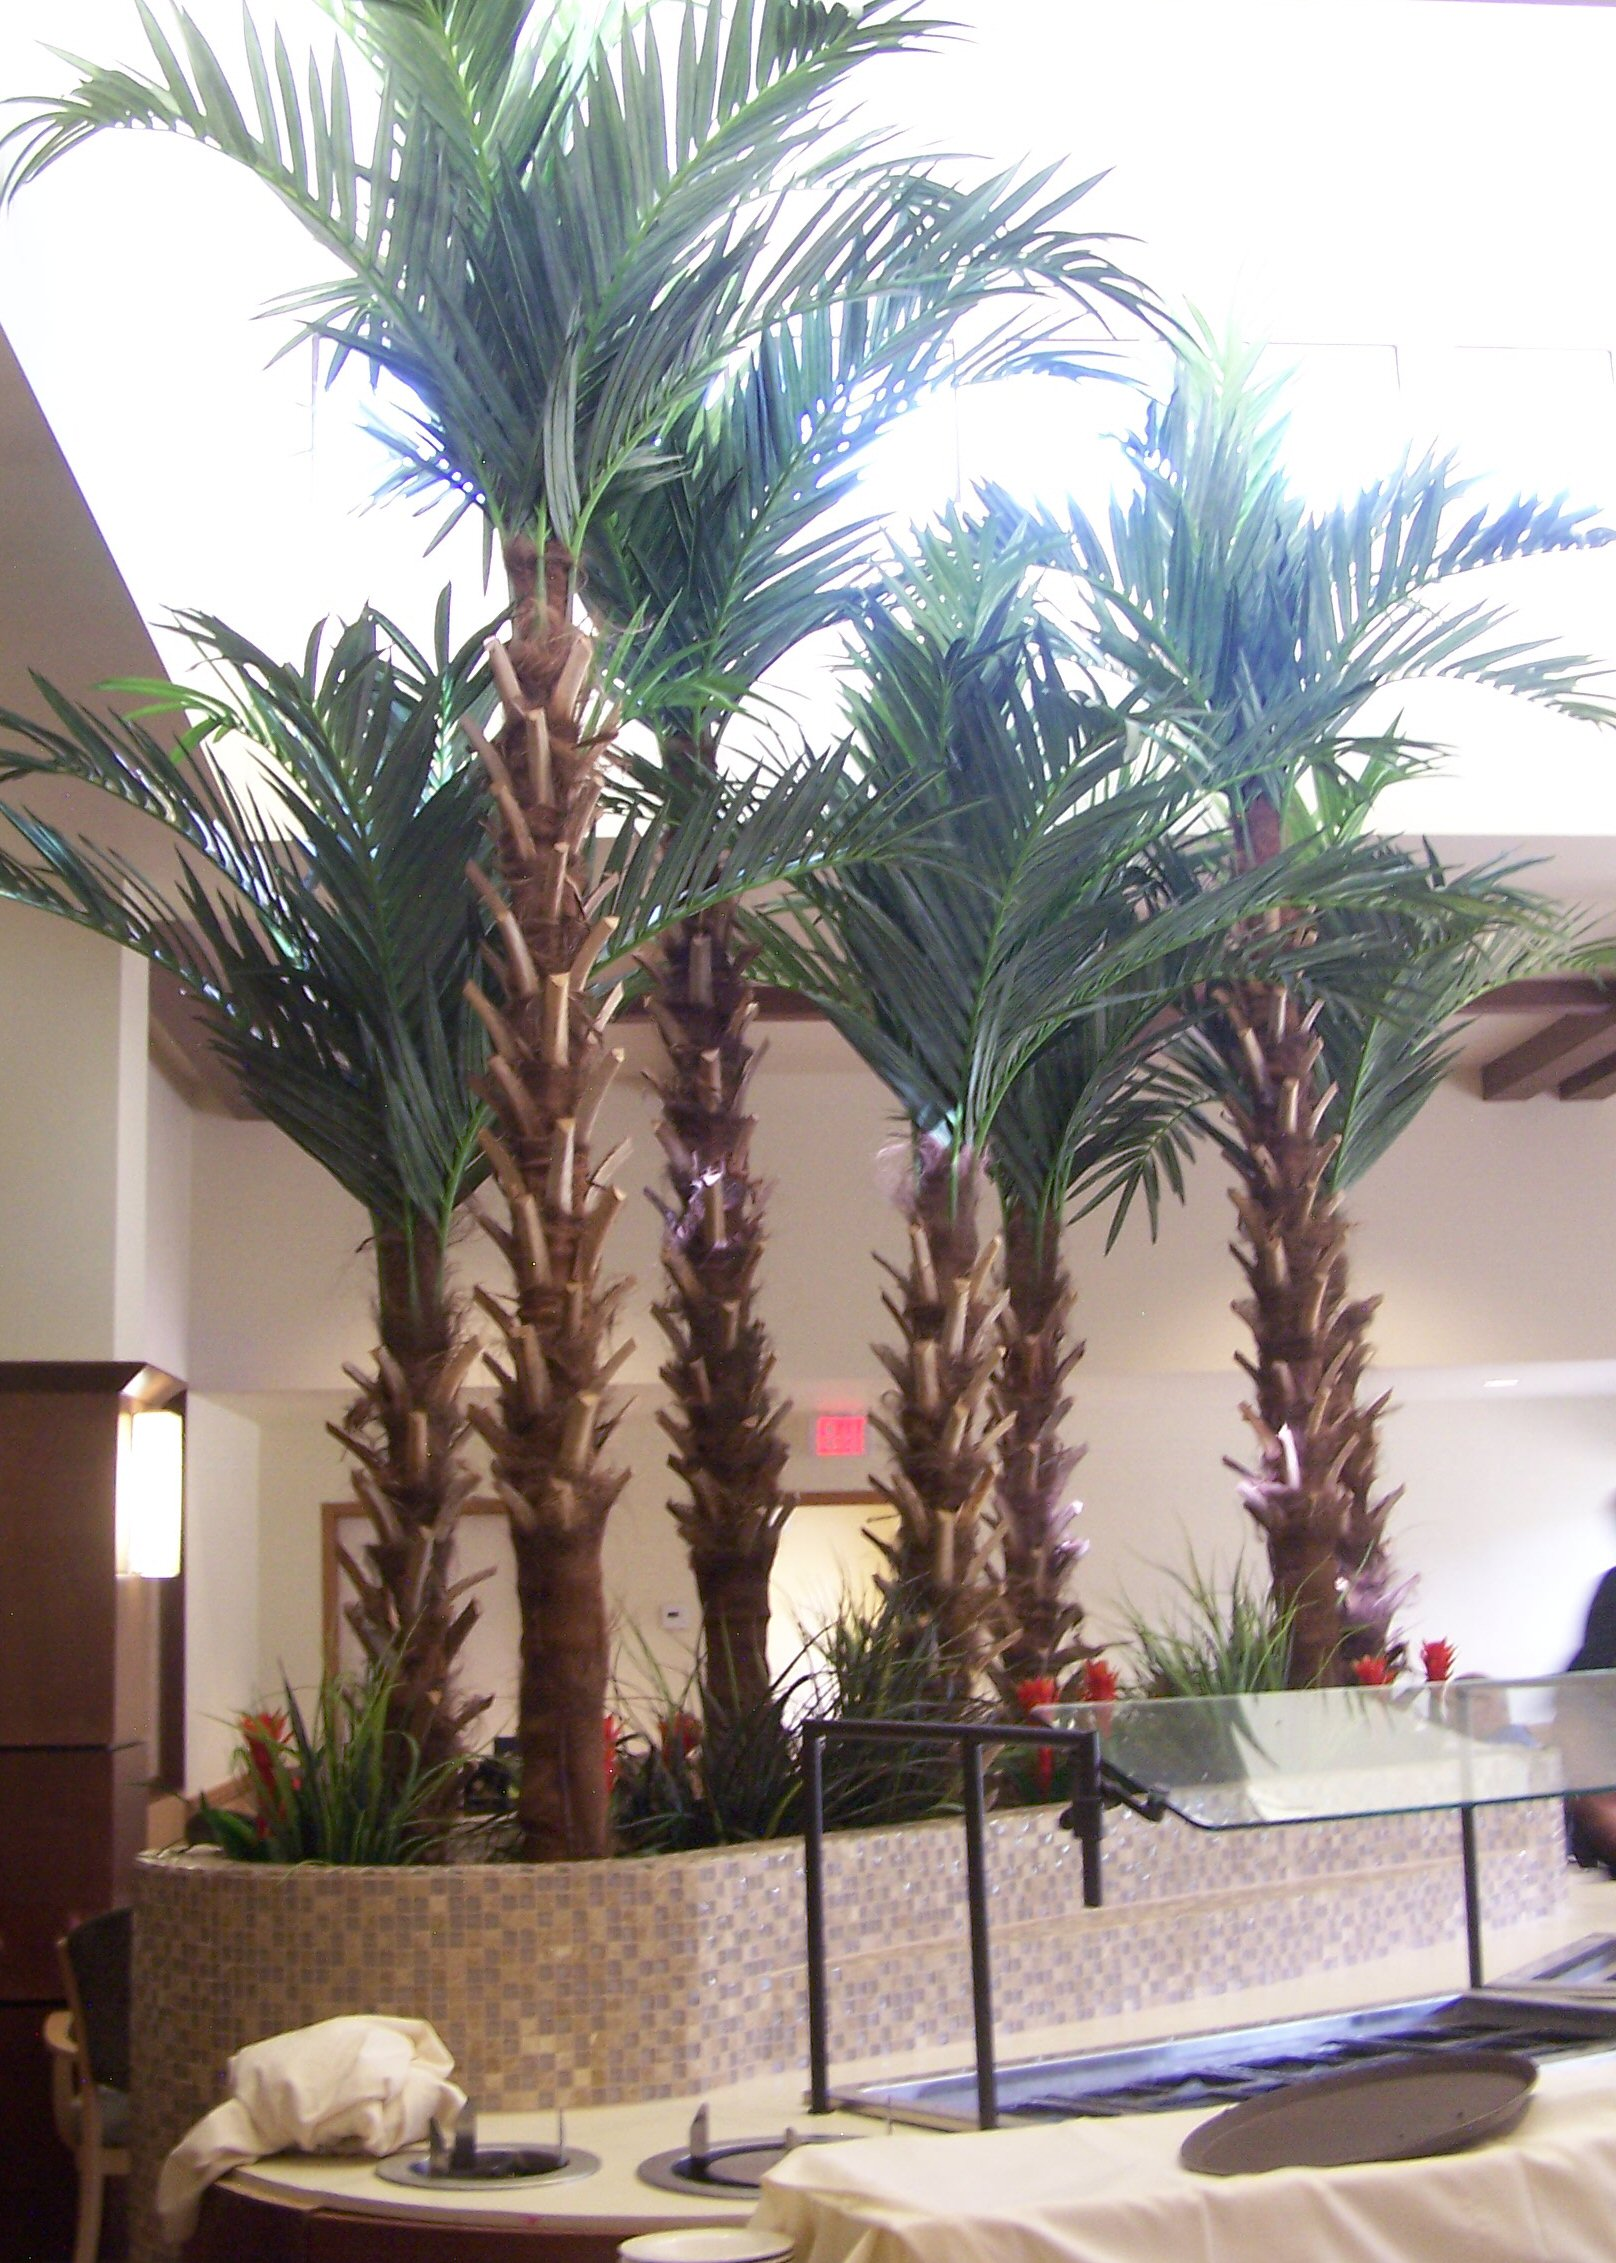 Make Be-Leaves large format specimen, preserved Palms, artificial trees for a Healthcare Facility lobby.